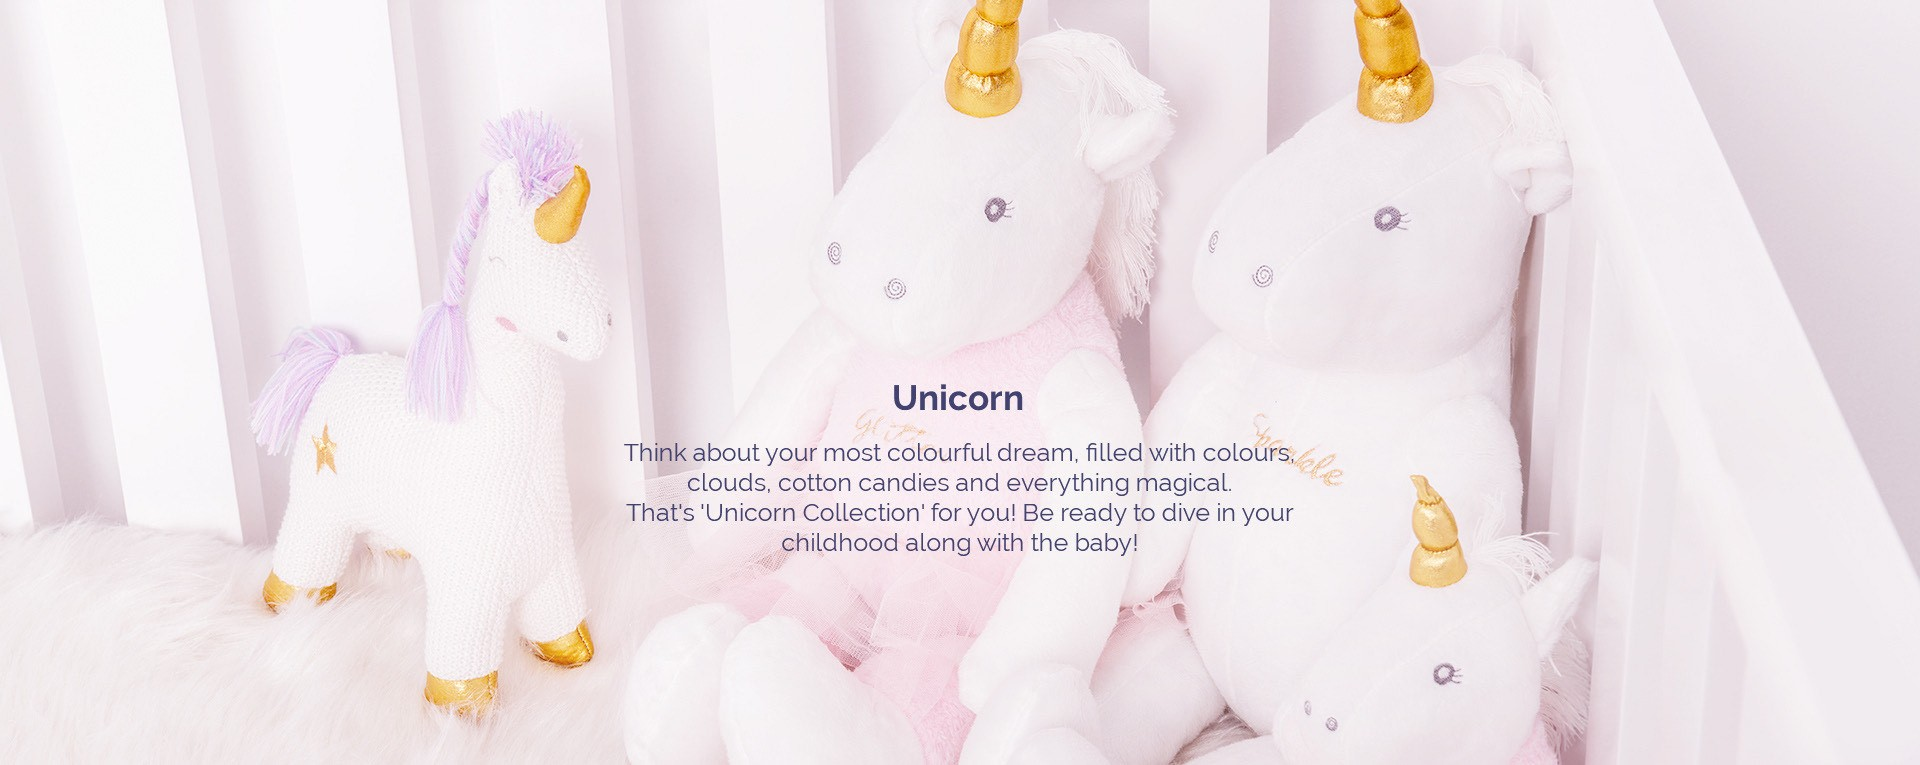 Think about the most colourful dream, filled with colours, clouds, cotton candies and everything magical. That's exactly what our Unicorn collection for kids is. The collection includes a wide range of unicorn clothing for kids, kids unicorn dress, gift set, unicorn soft toys, towels, blankets and other accessories. Visit MiArcus.com and shop from our unicorn collection for kids and get amazing discounts.